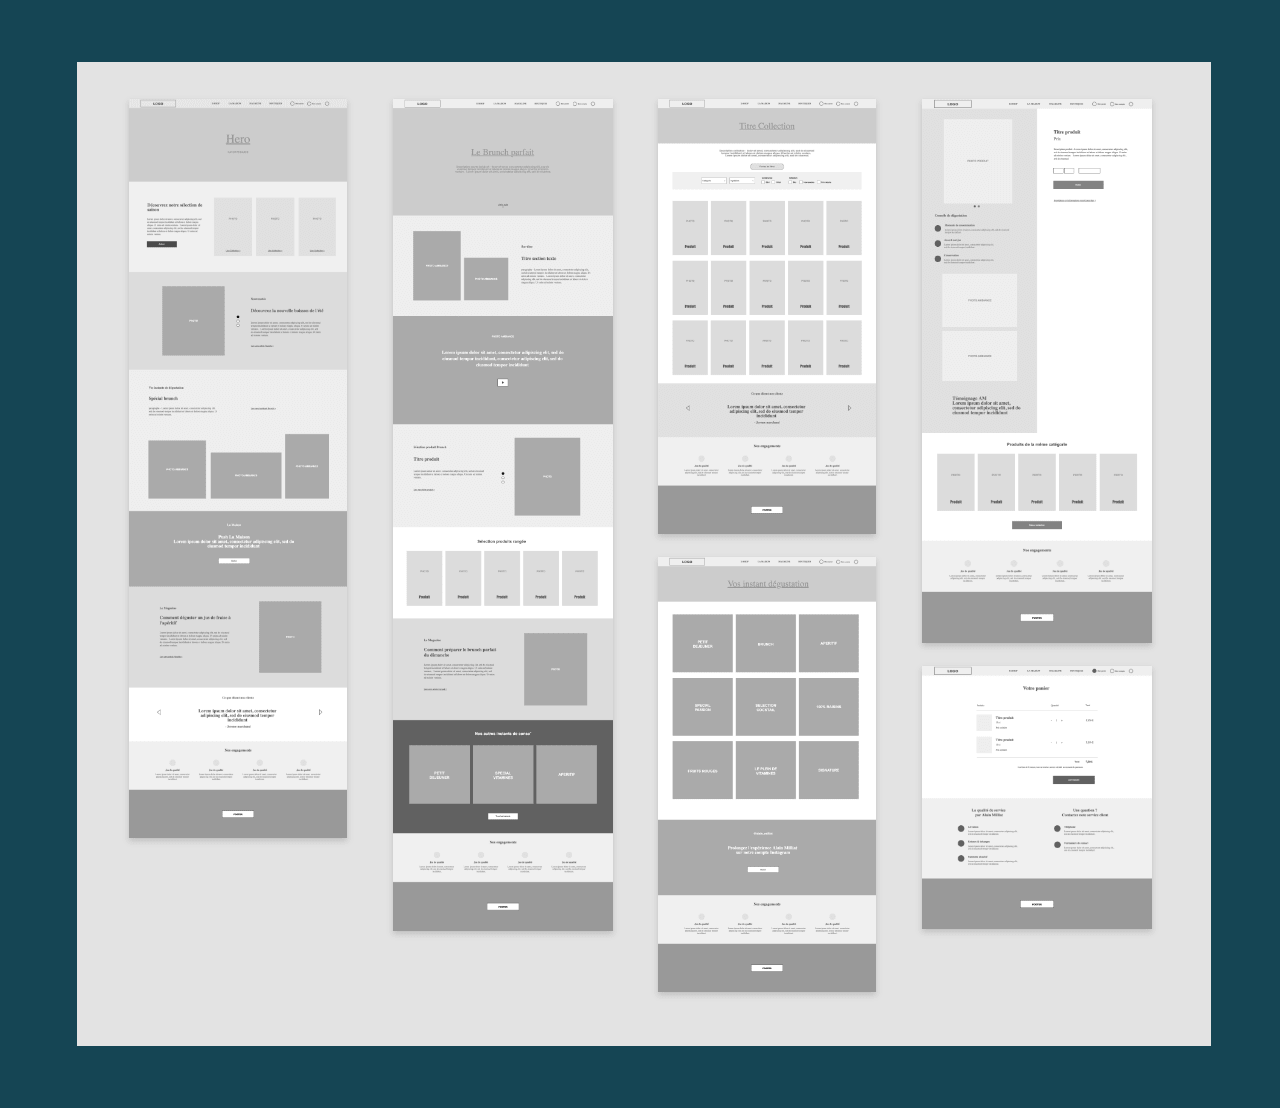 Webdesign - wireframes pour site e-commerce